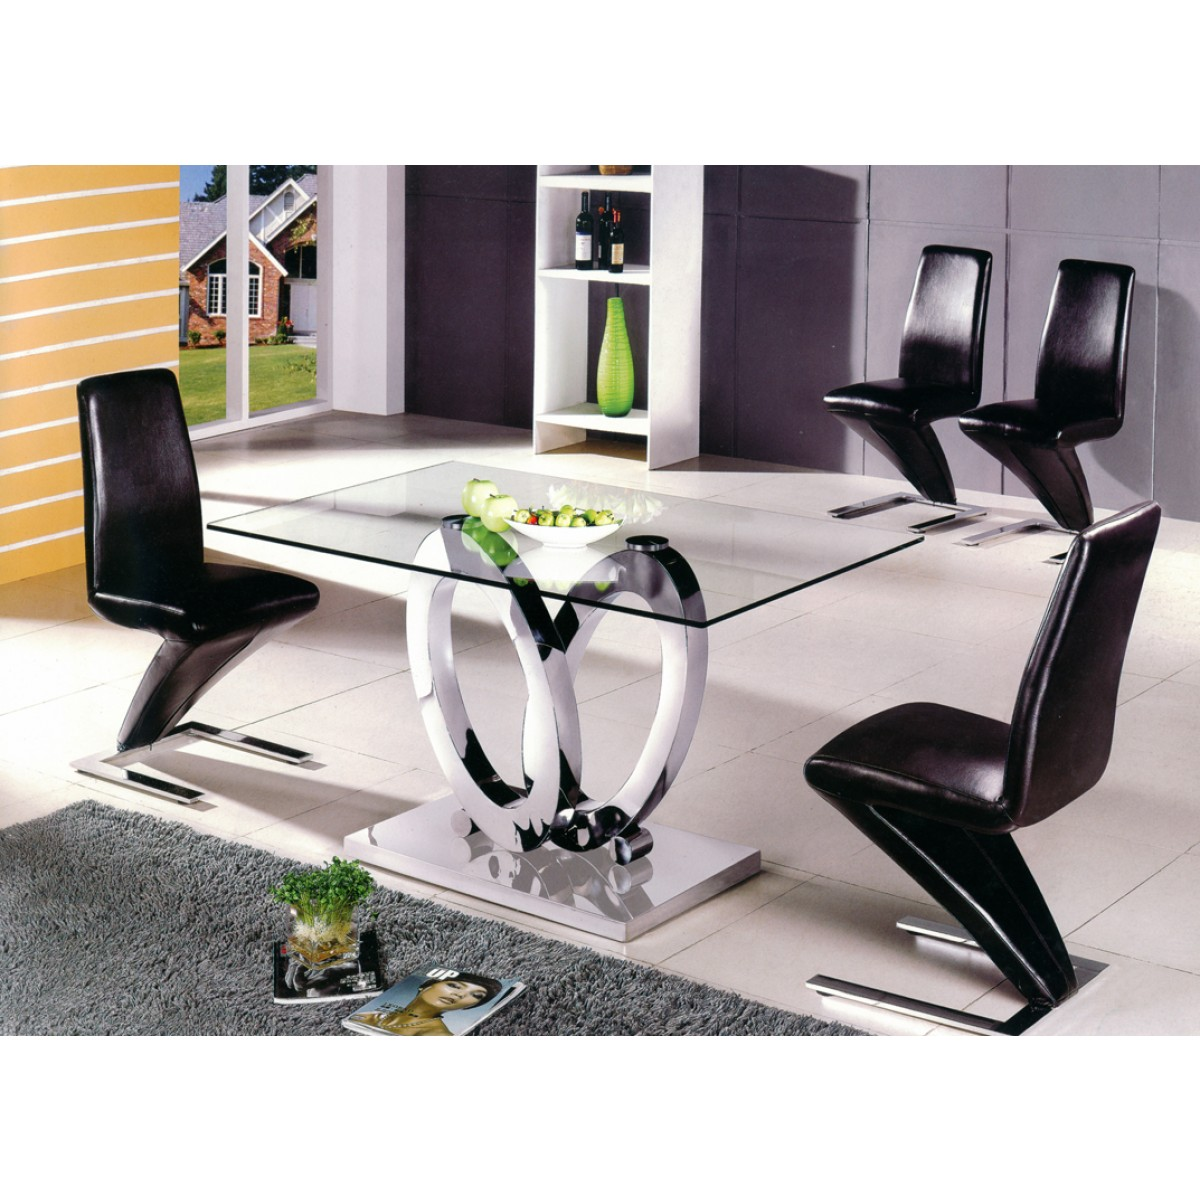 Table salle manger originale fashion designs for Table salle a manger en solde